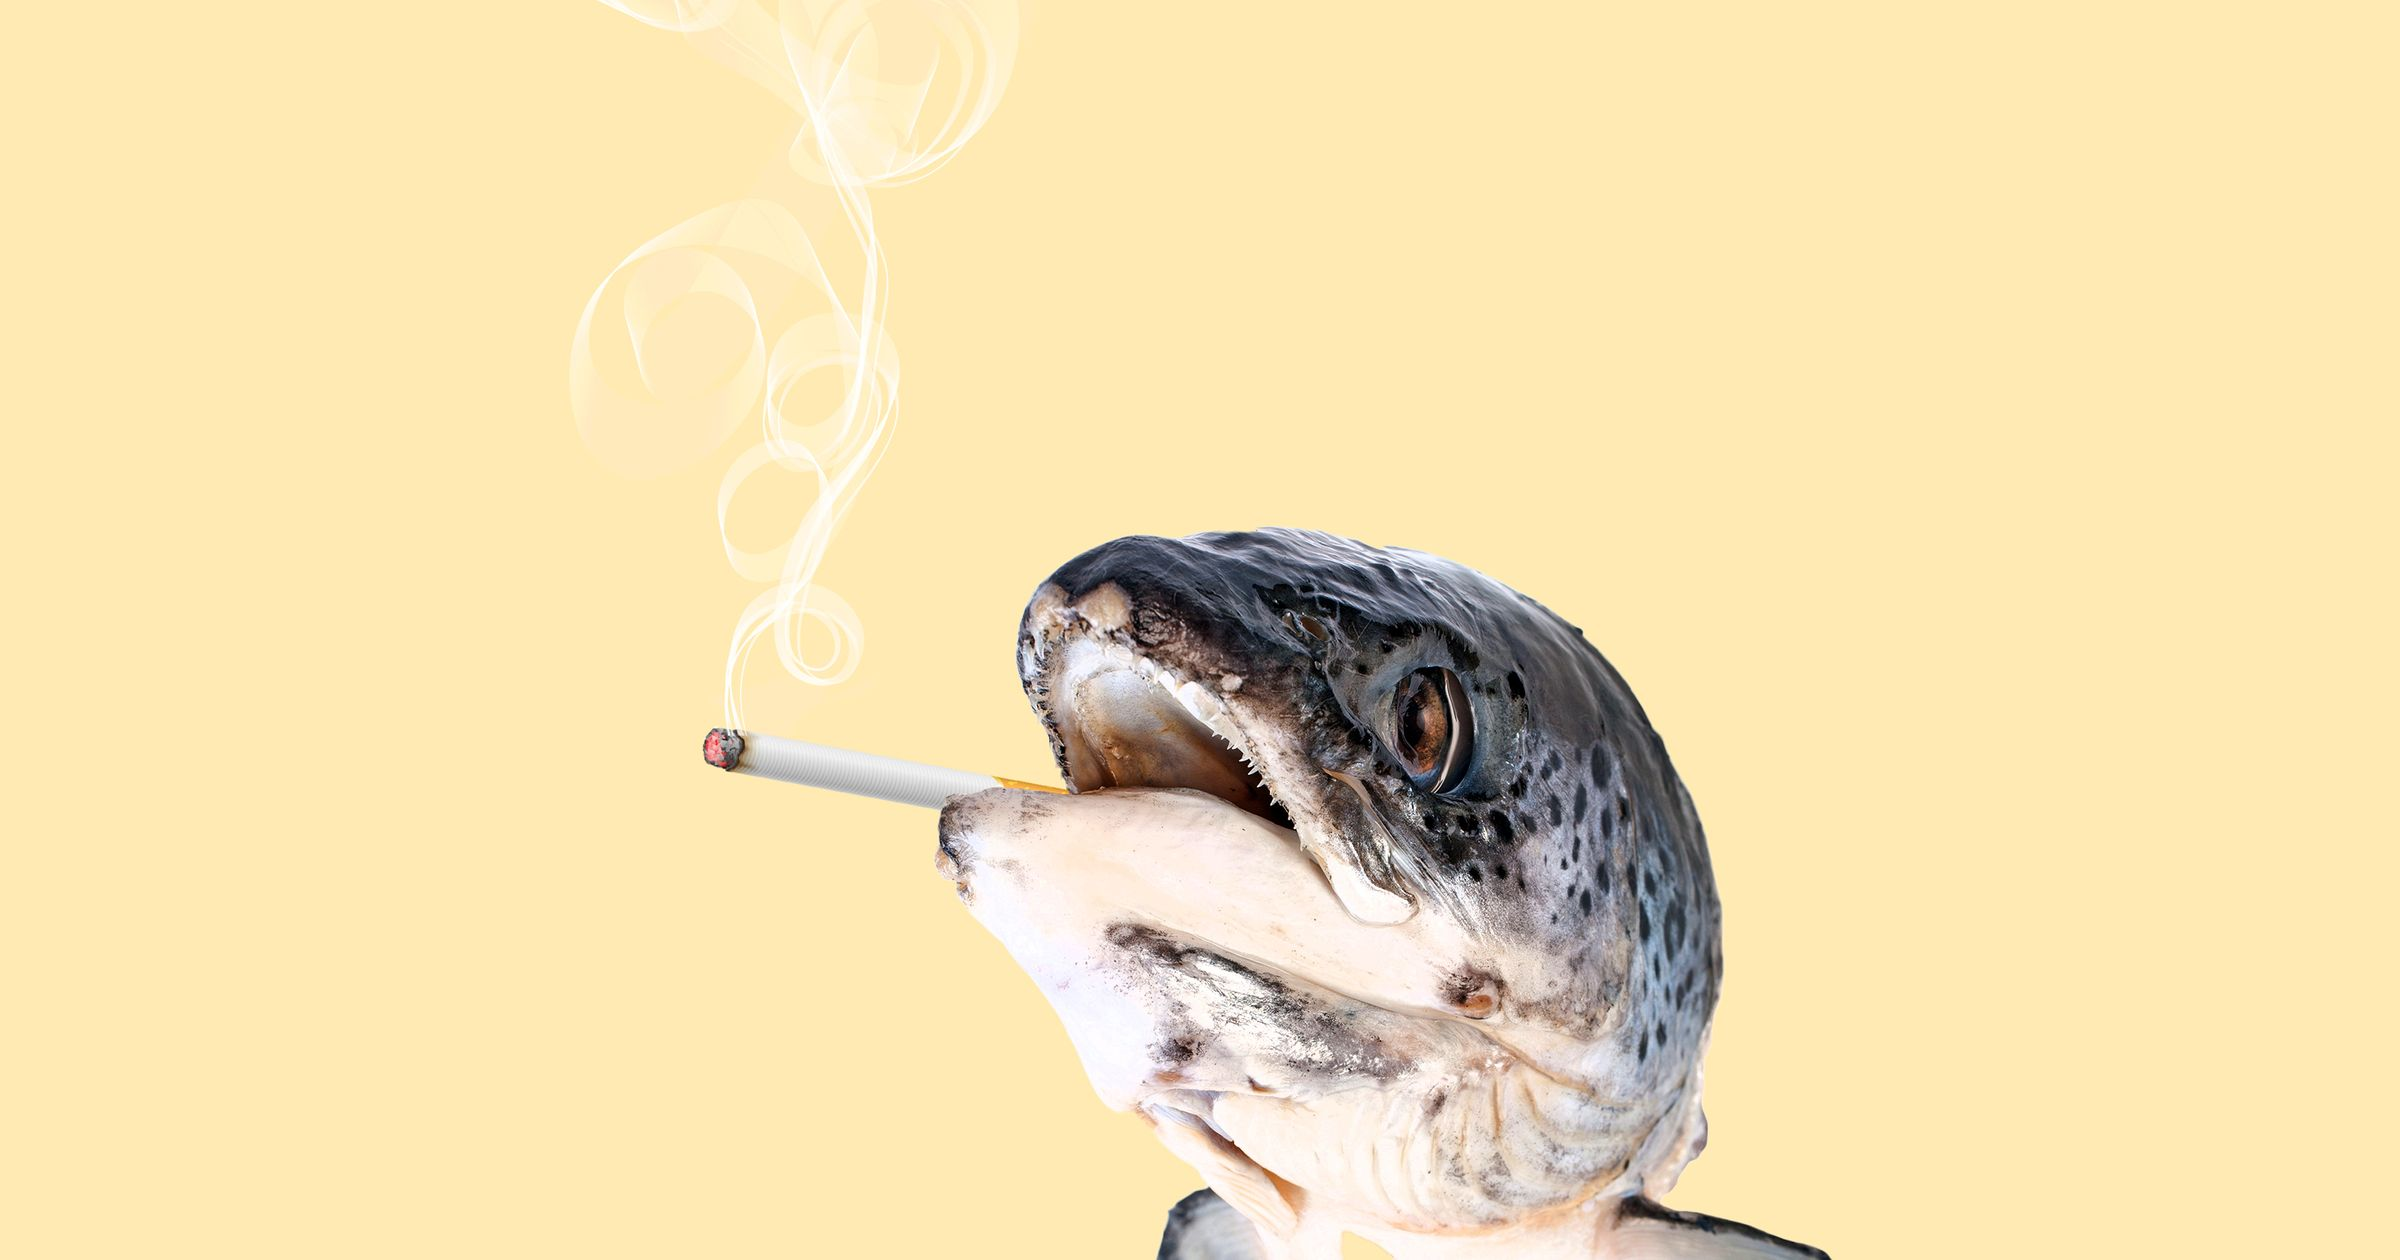 When Cigarettes Remind Smokers of Rotten Fish -- Science of Us: http://nymag.com/scienceofus/2014/11/when-cigarettes-remind-smokers-of-rotten-fish.html